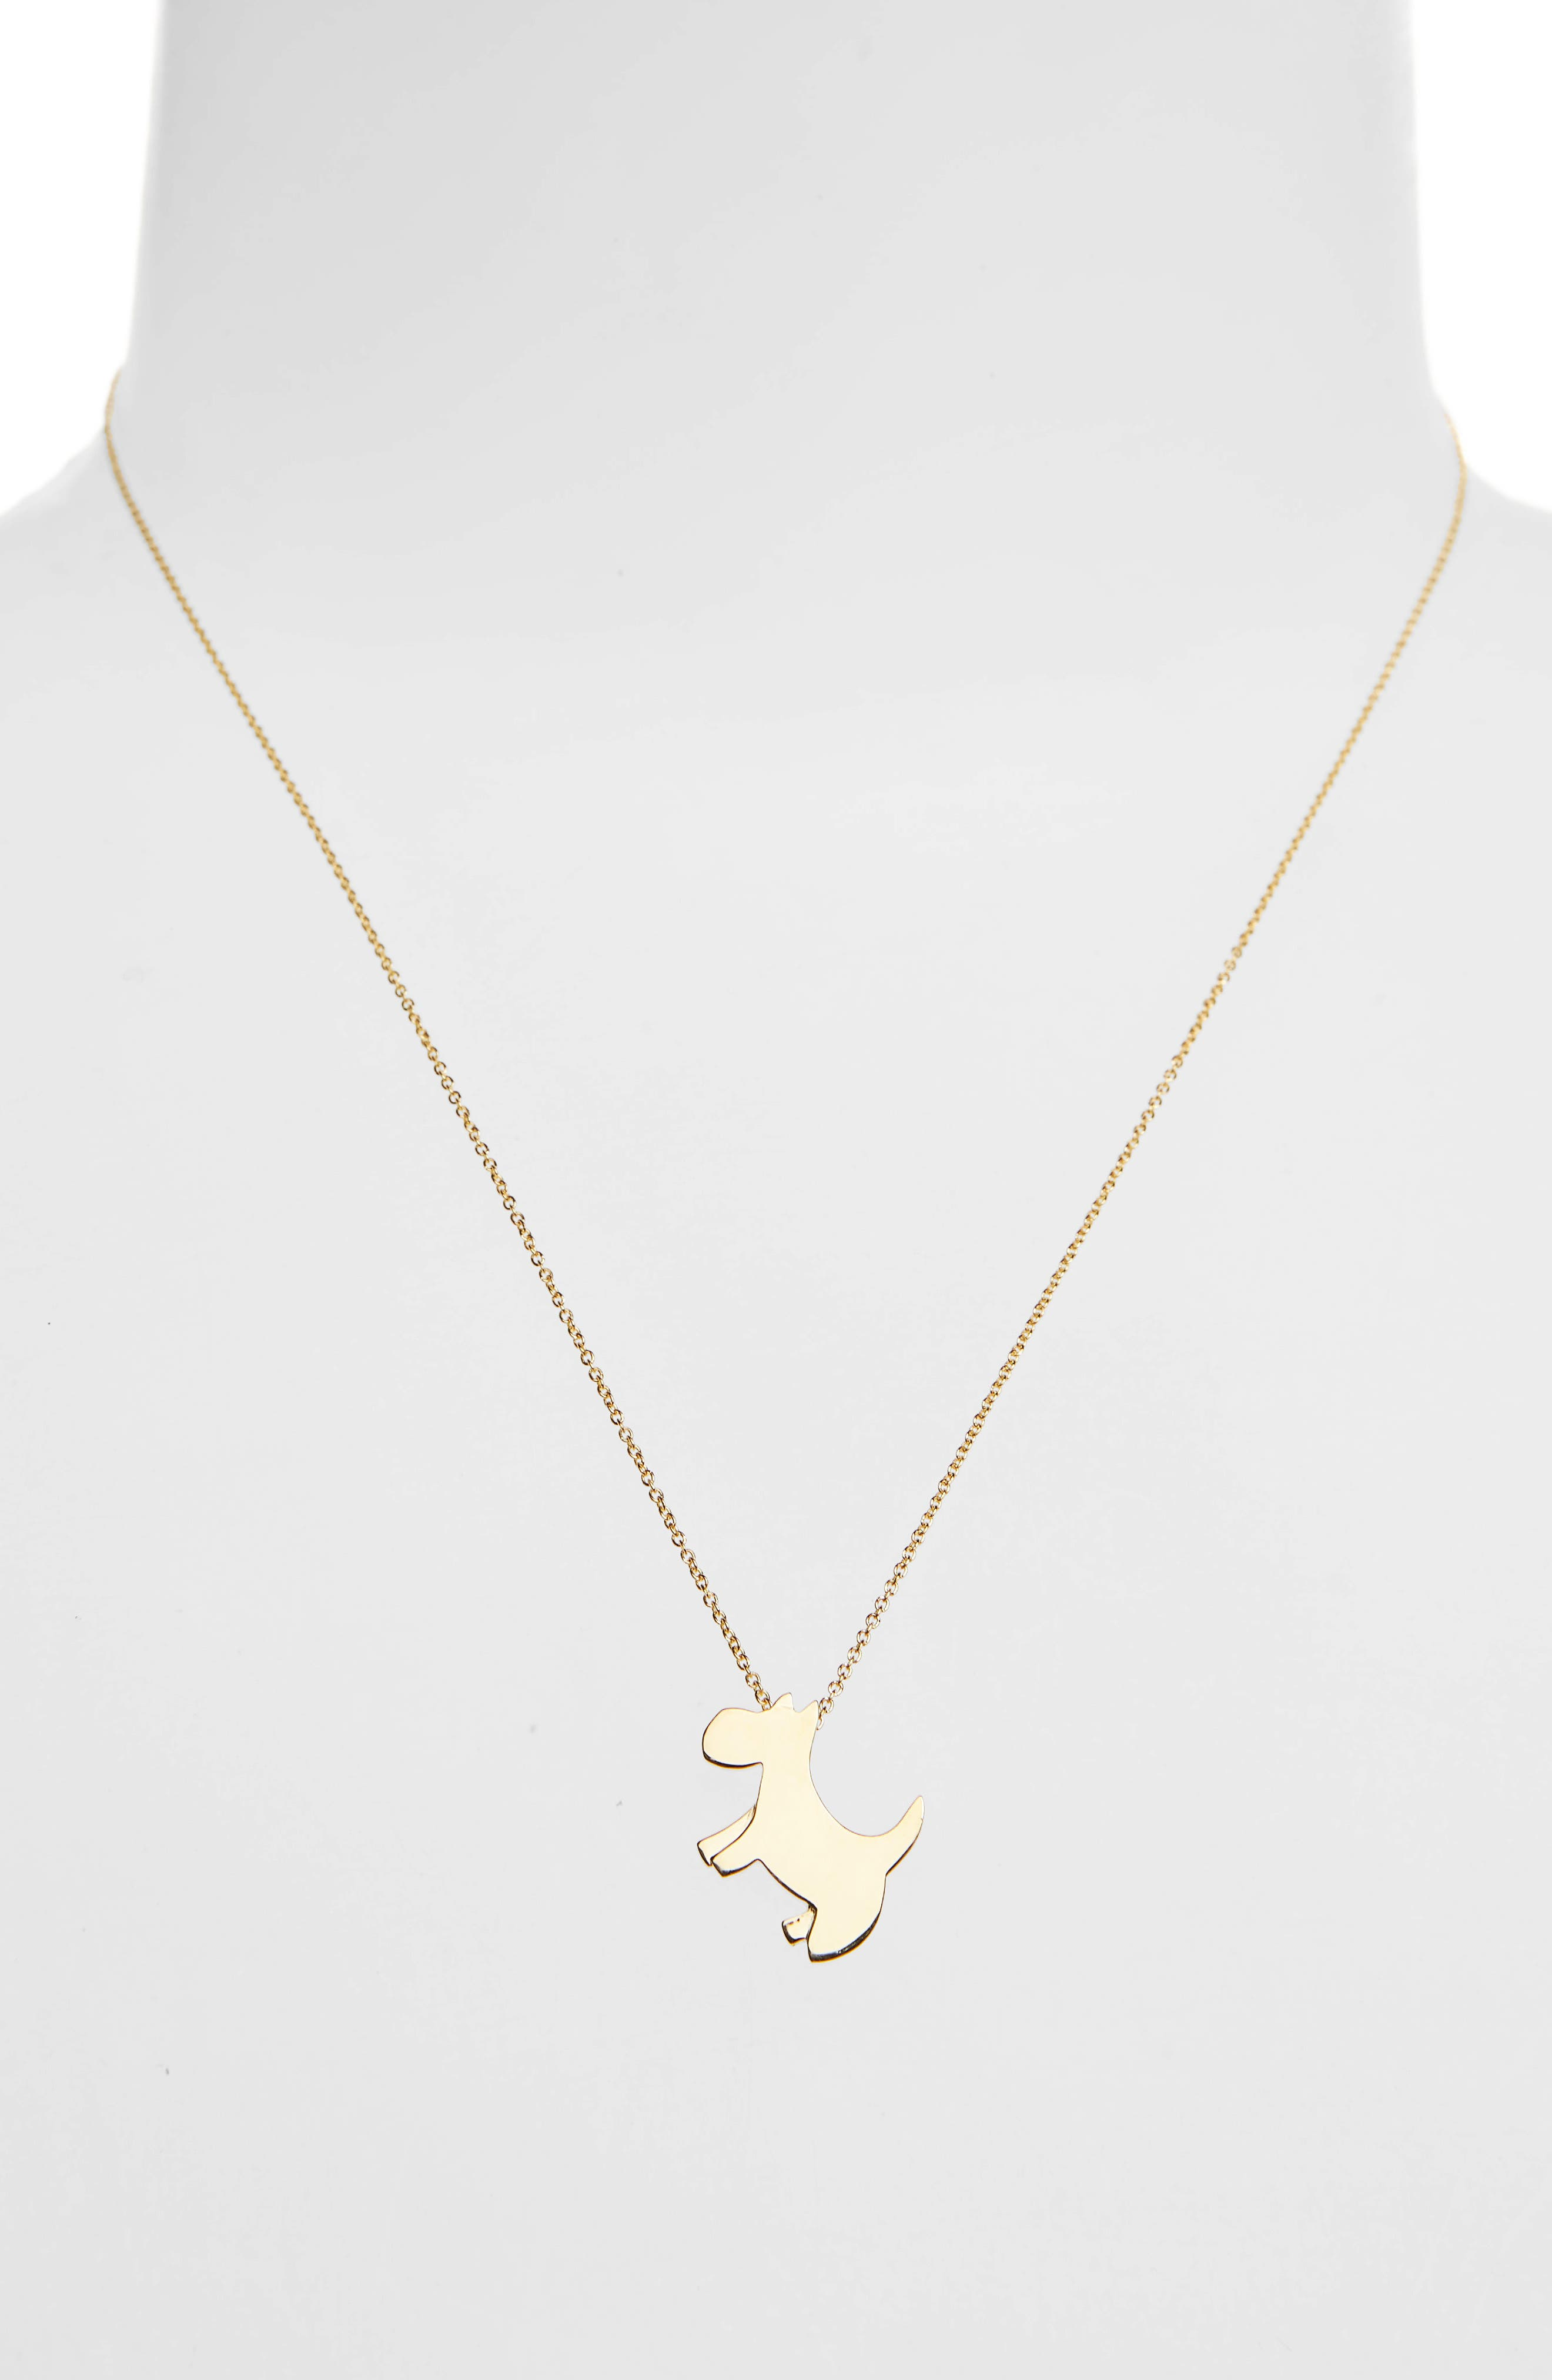 Scottie Dog Necklace,                             Alternate thumbnail 2, color,                             Yellow Gold